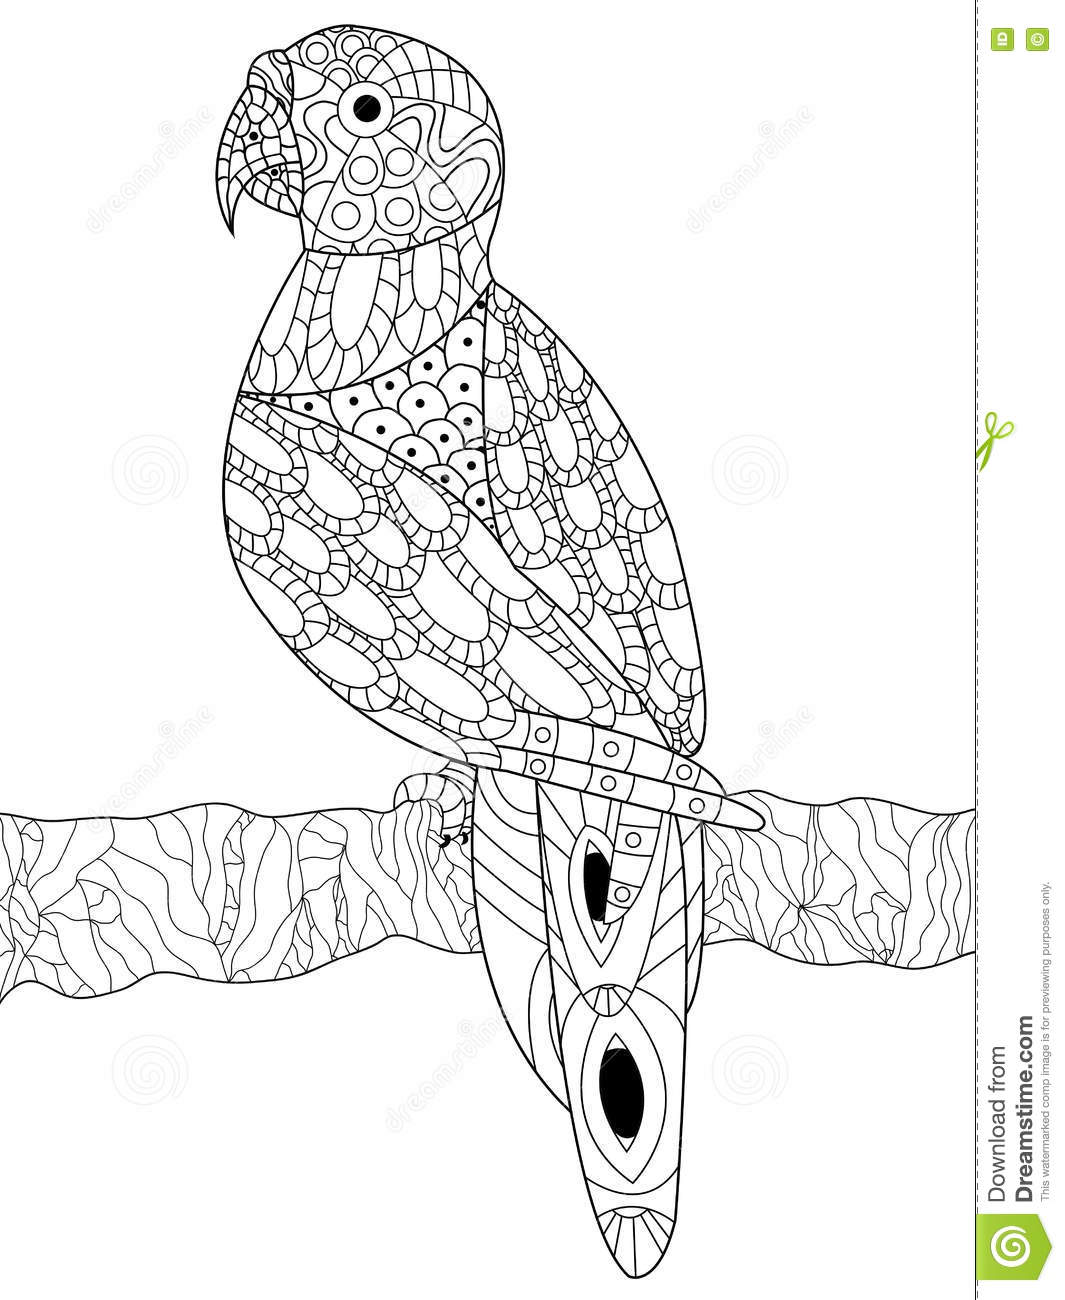 Parrot Coloring Vector For Adults Stock Vector